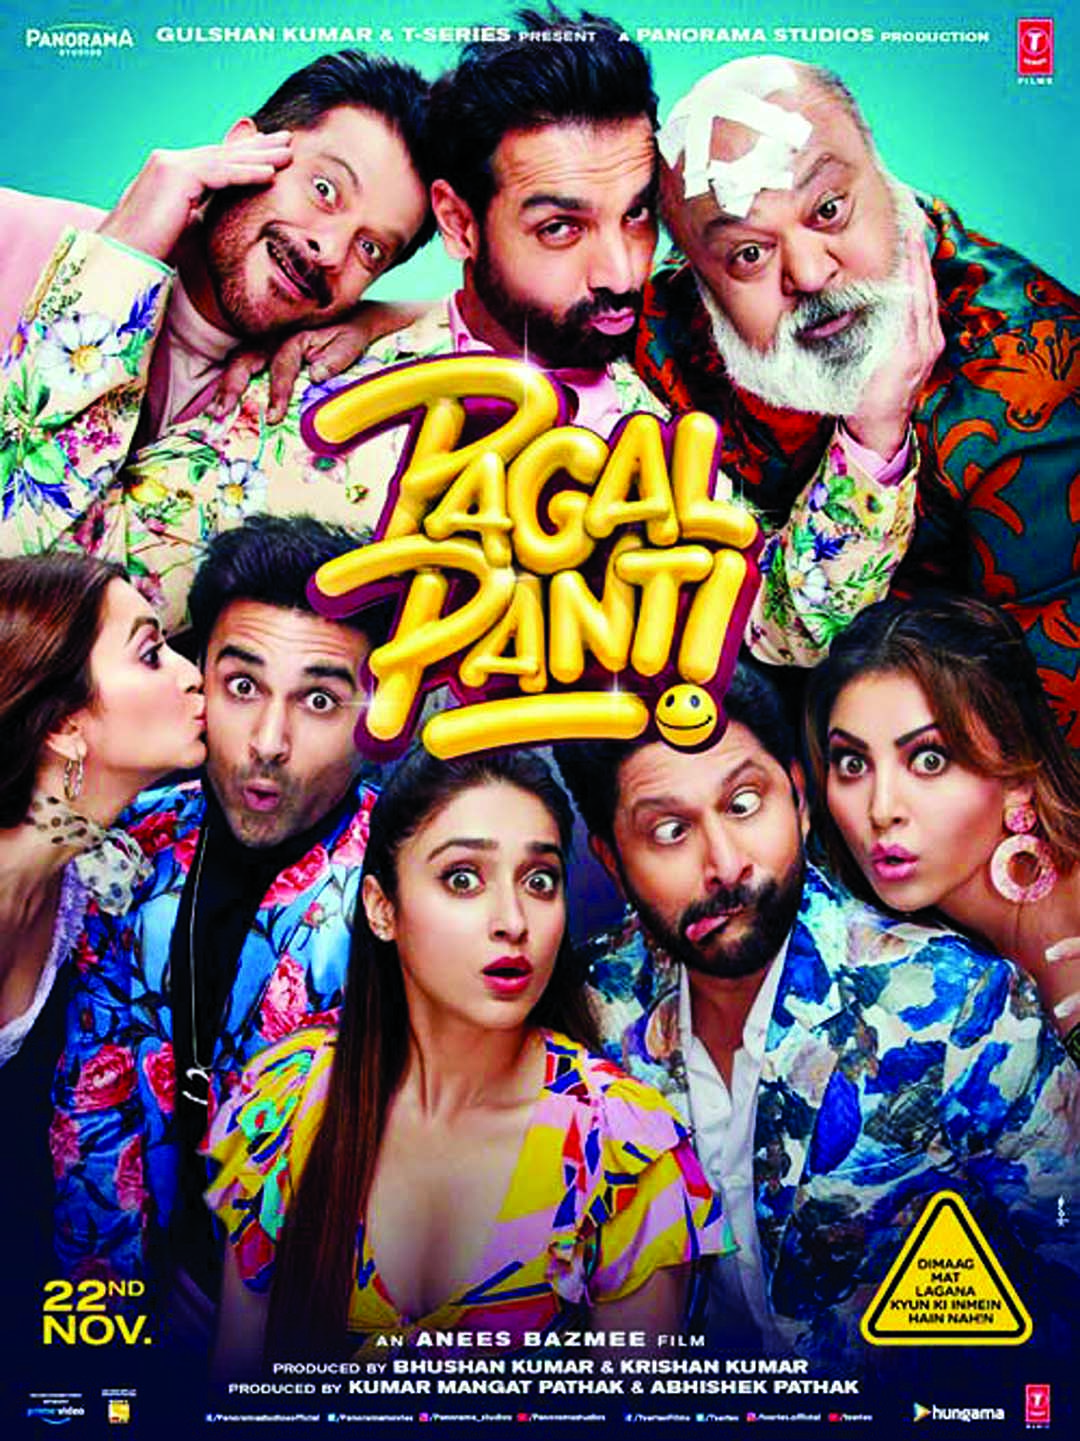 'Pagalpanti' trailer is full of madness